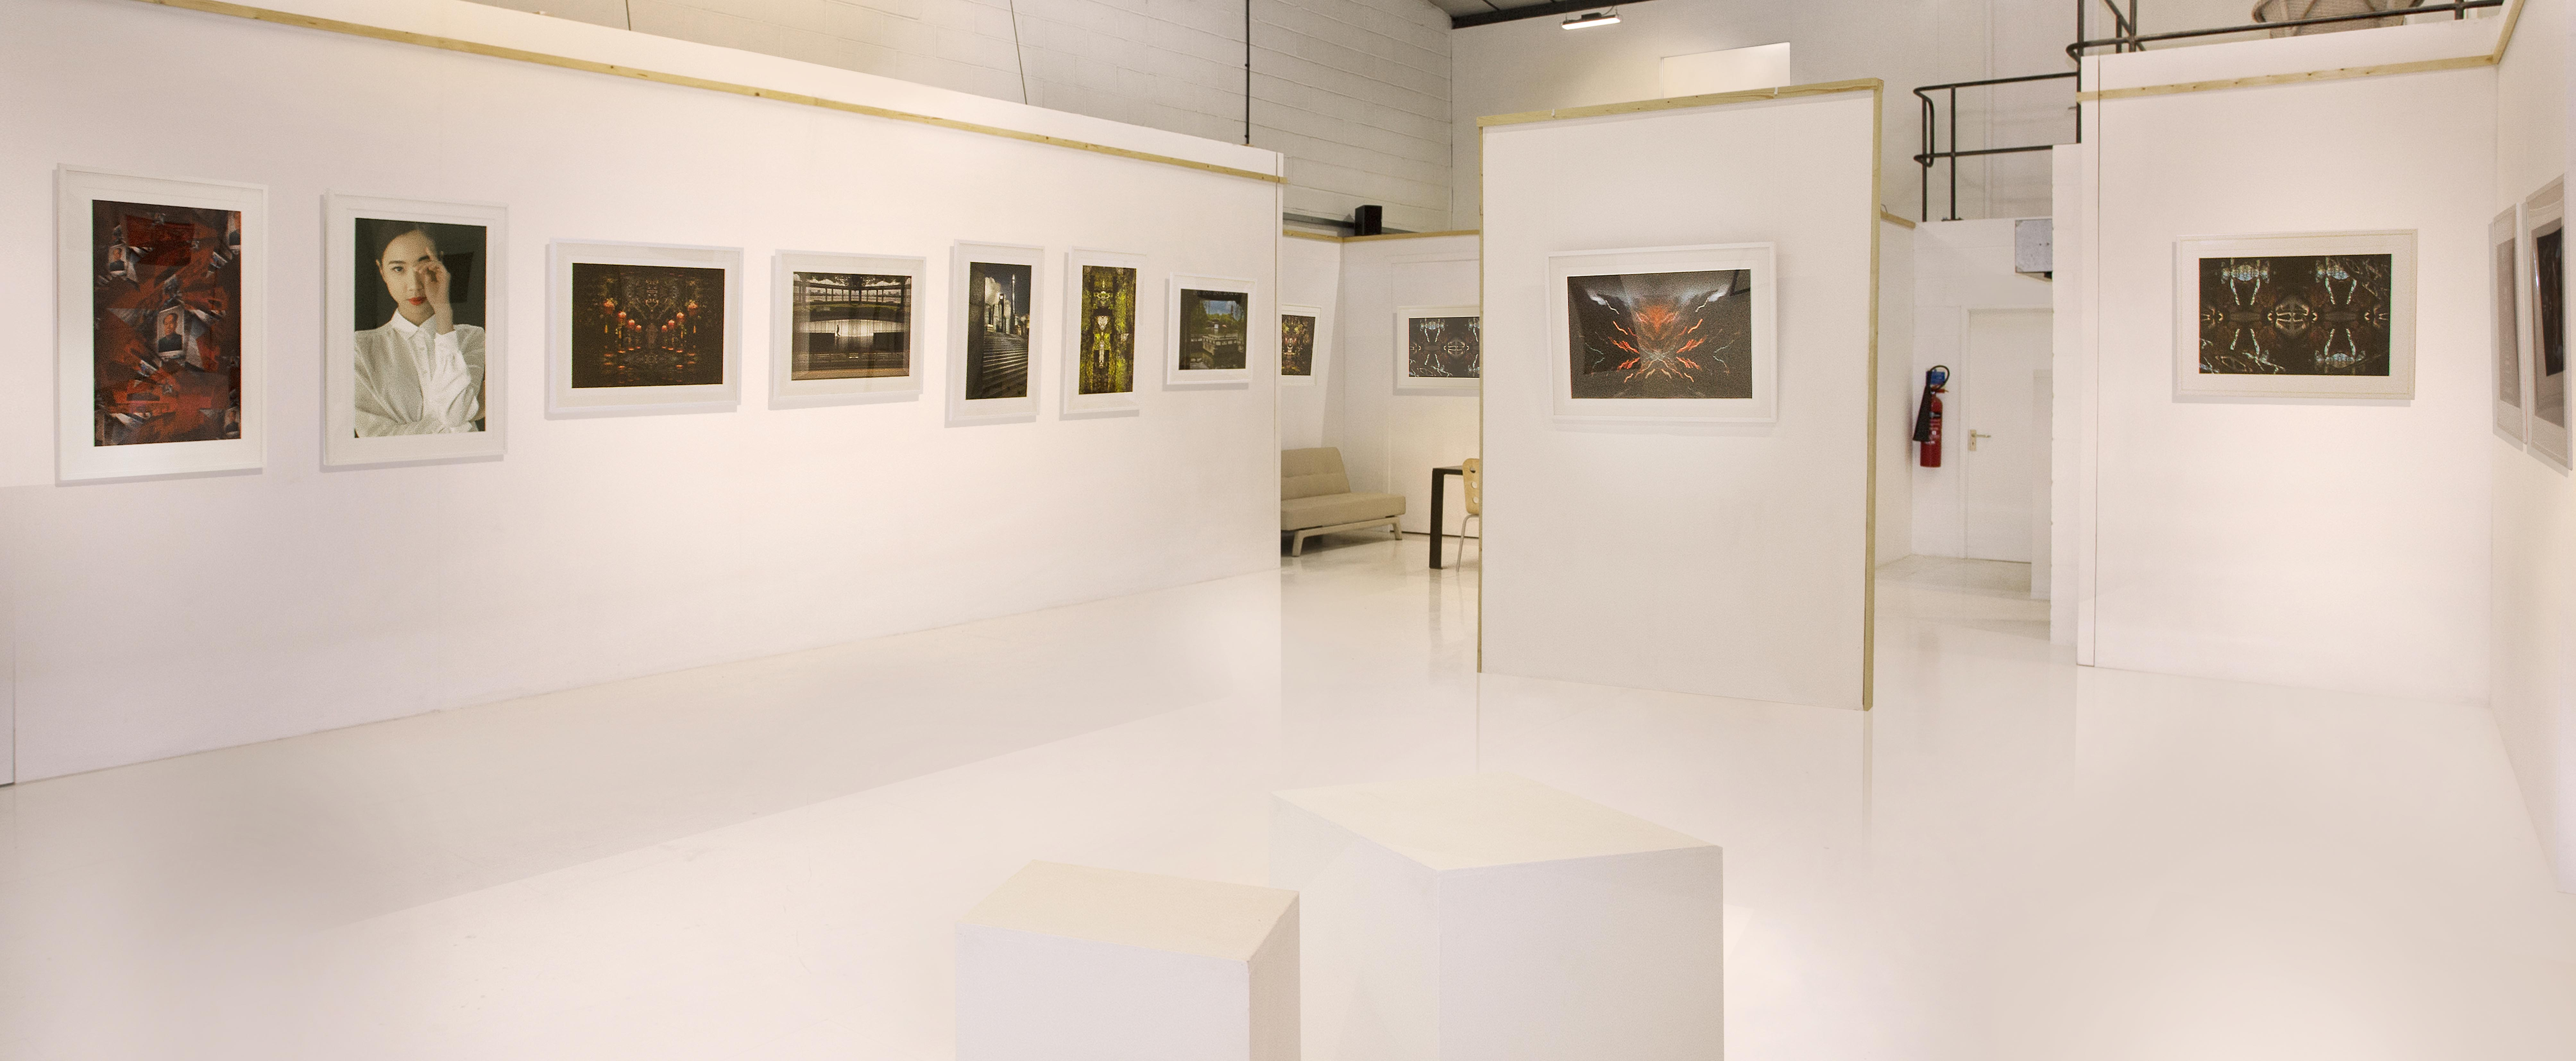 A view from the gallery space